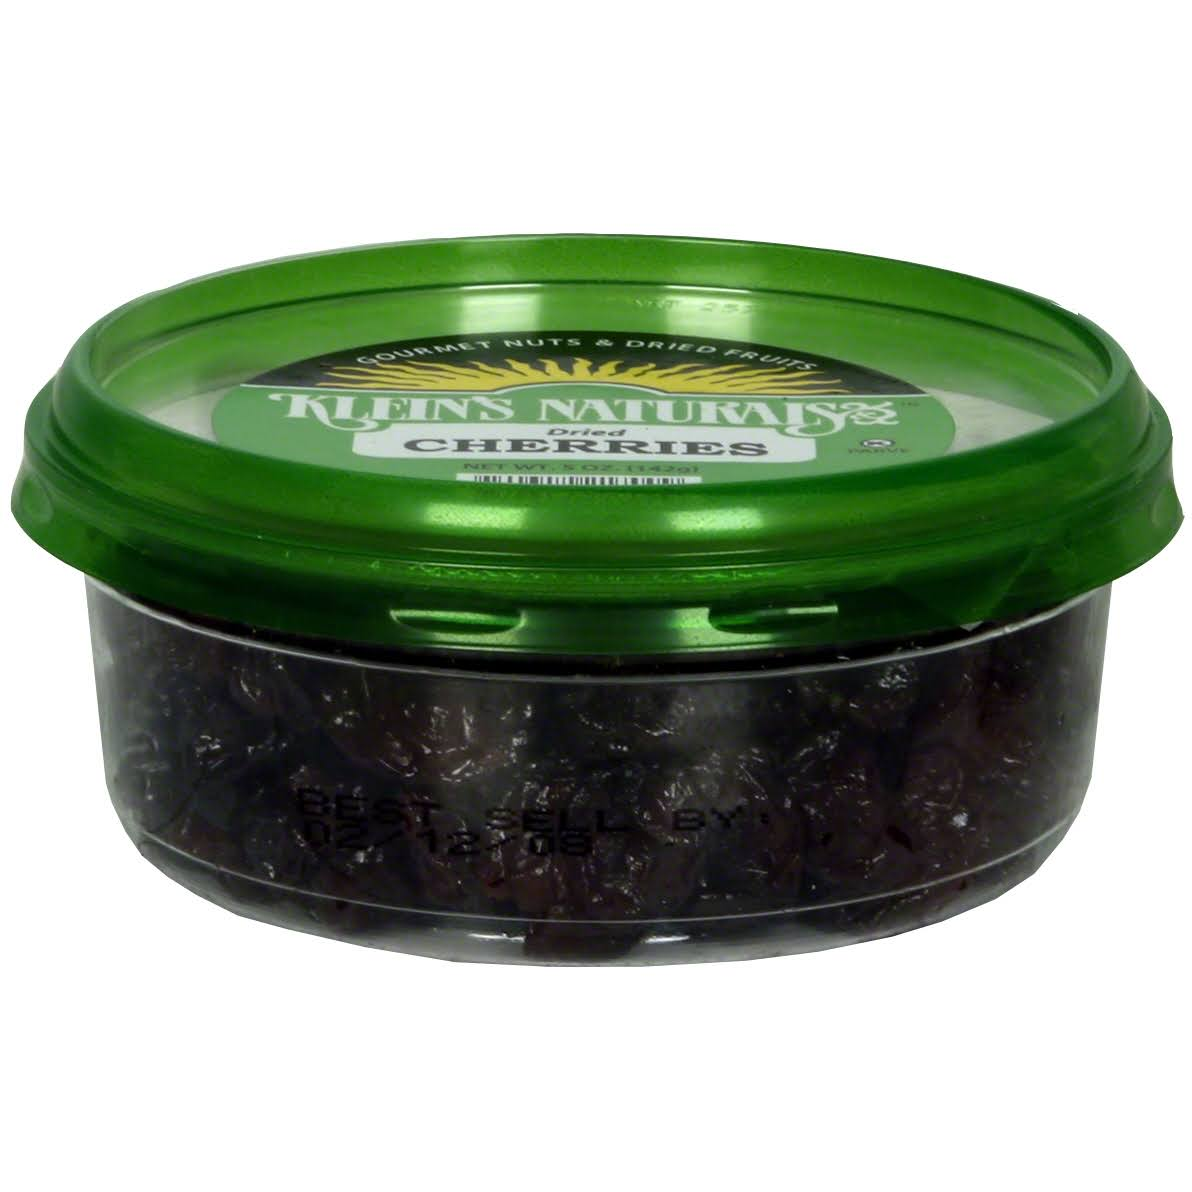 Kleins Naturals Cherries, Dried - 5 oz